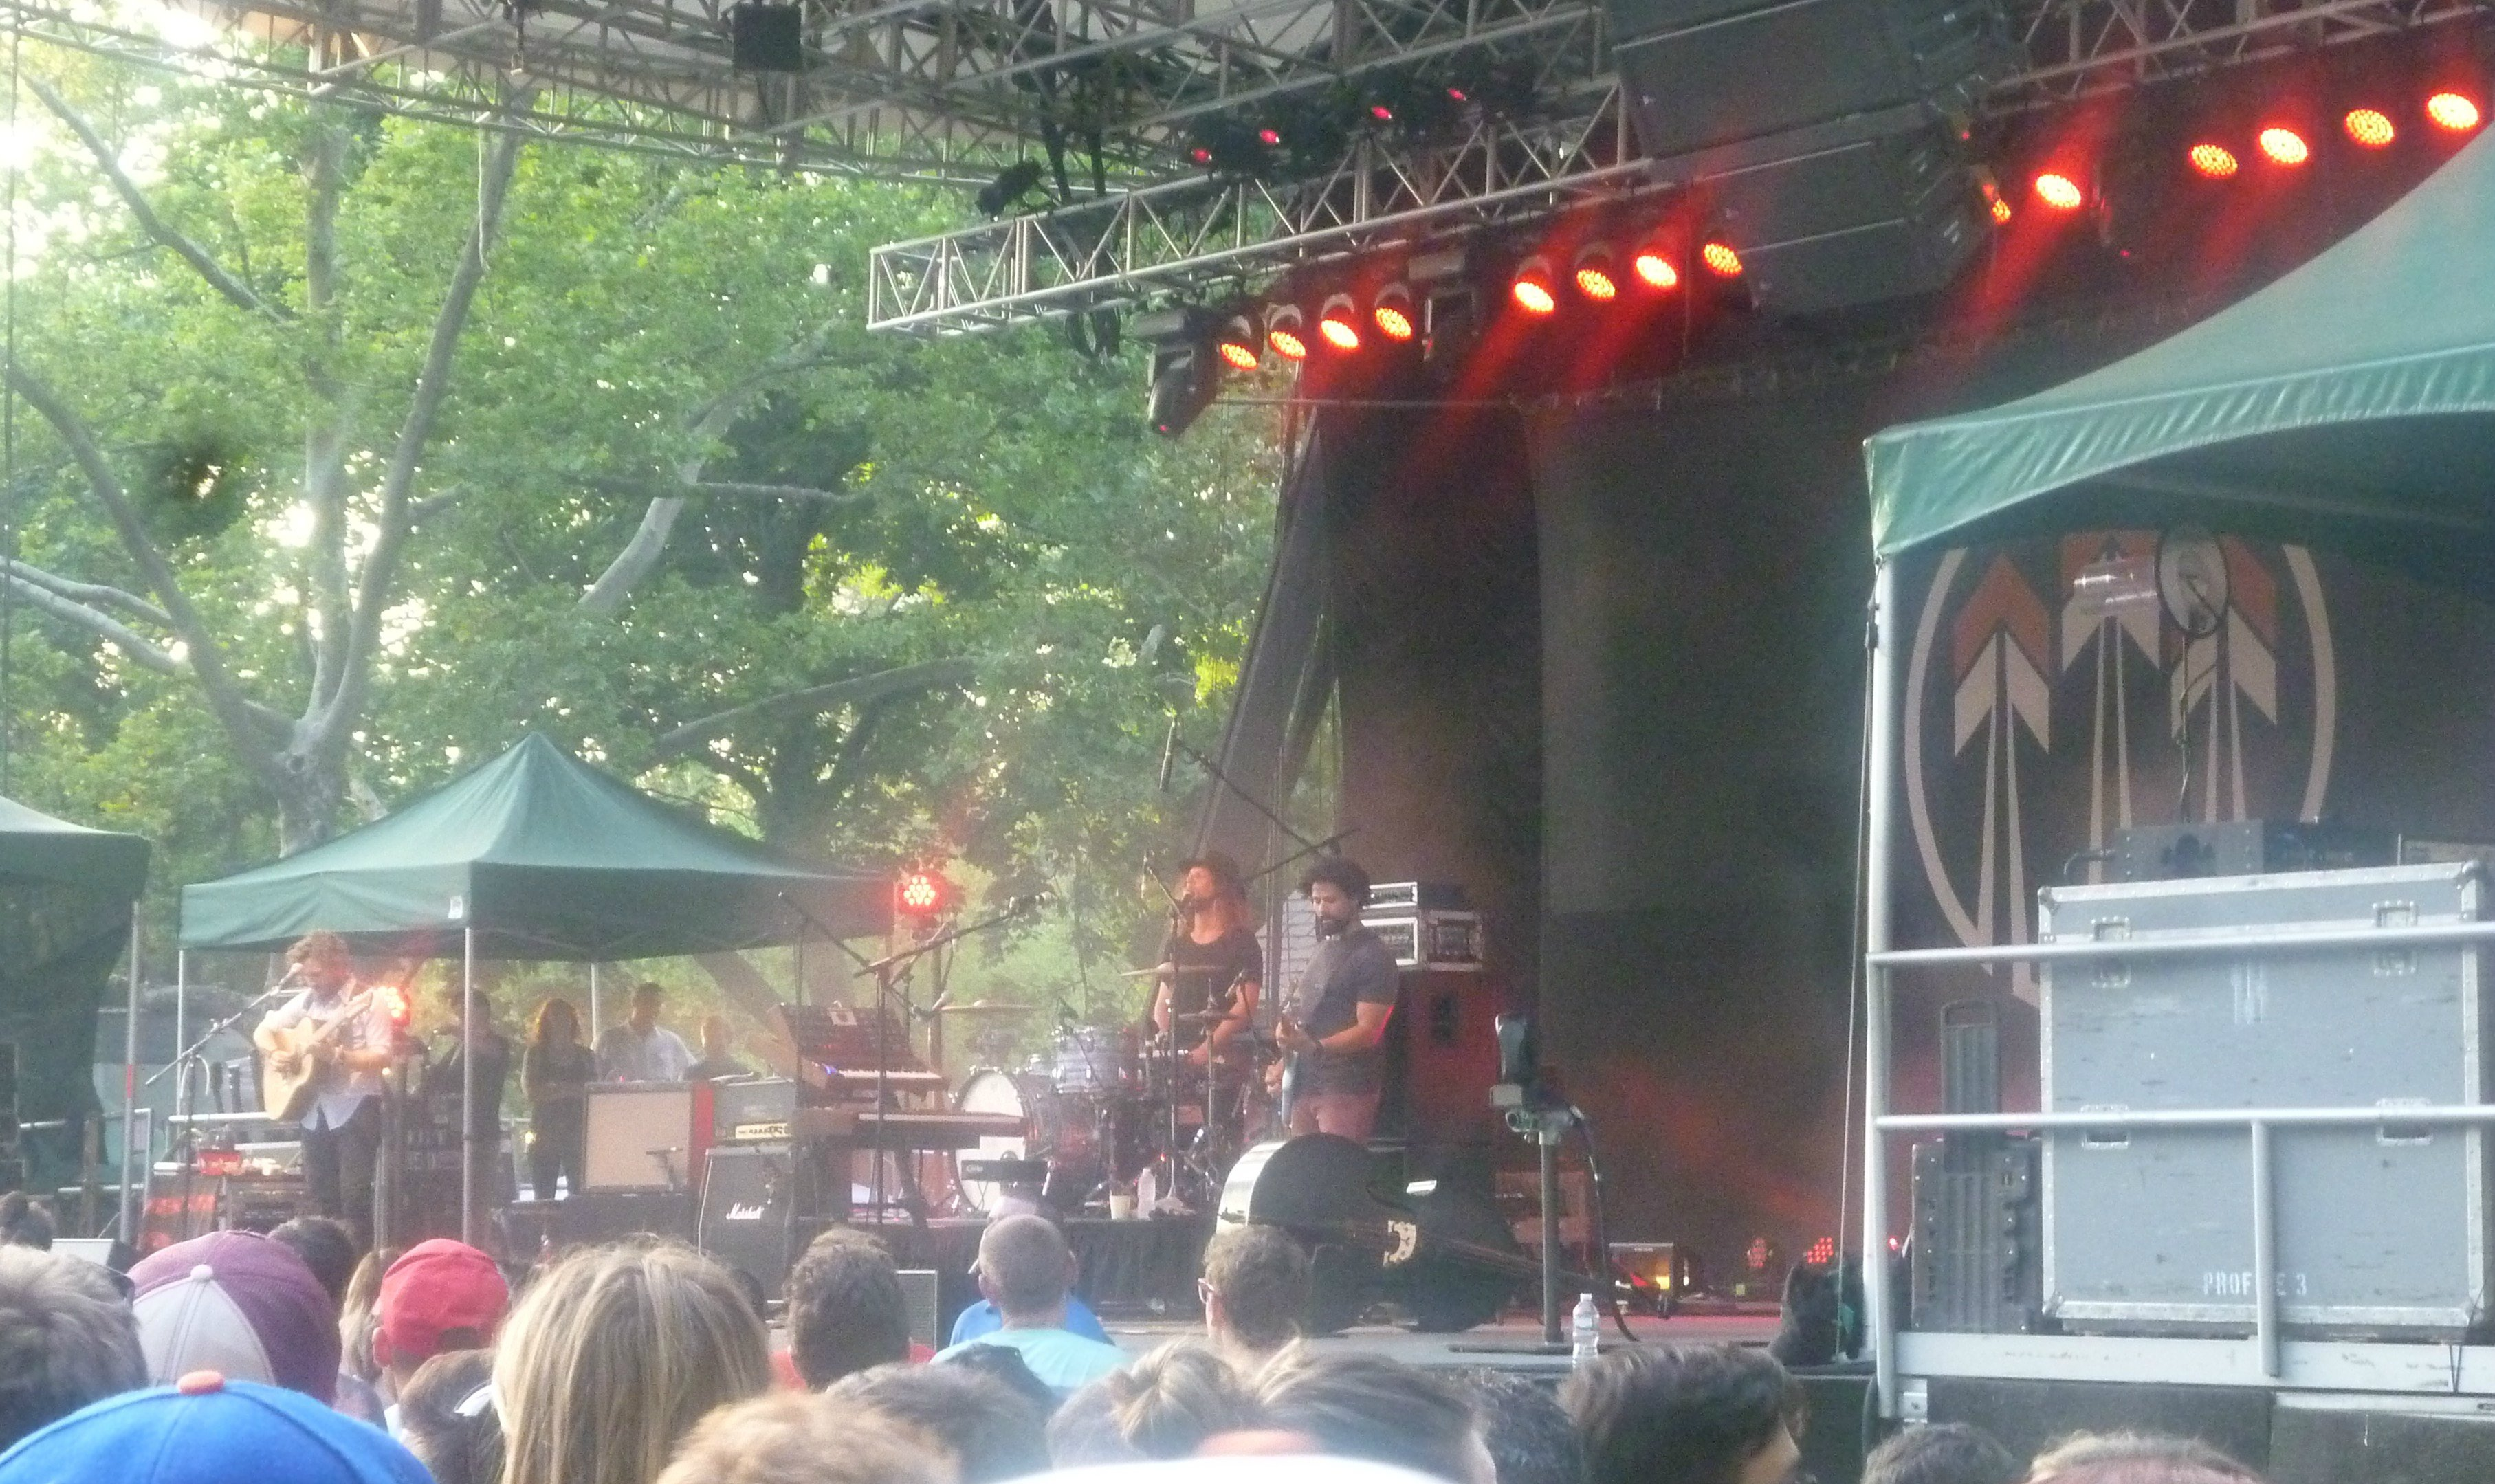 John-Butler-Trio-Central-Park-2014-band-crowd